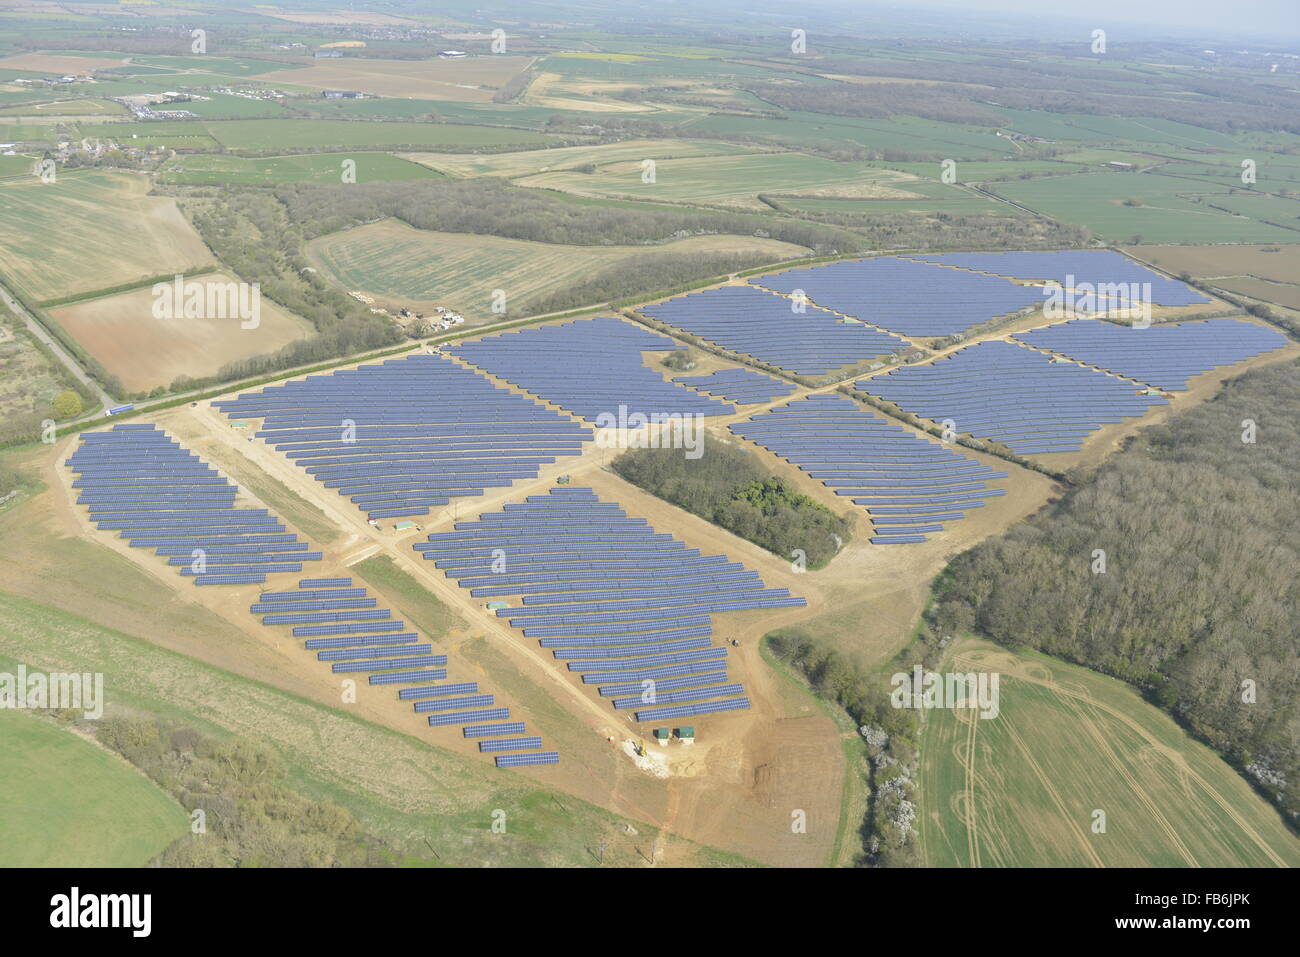 An aerial view of a solar farm in Leicestershire - Stock Image